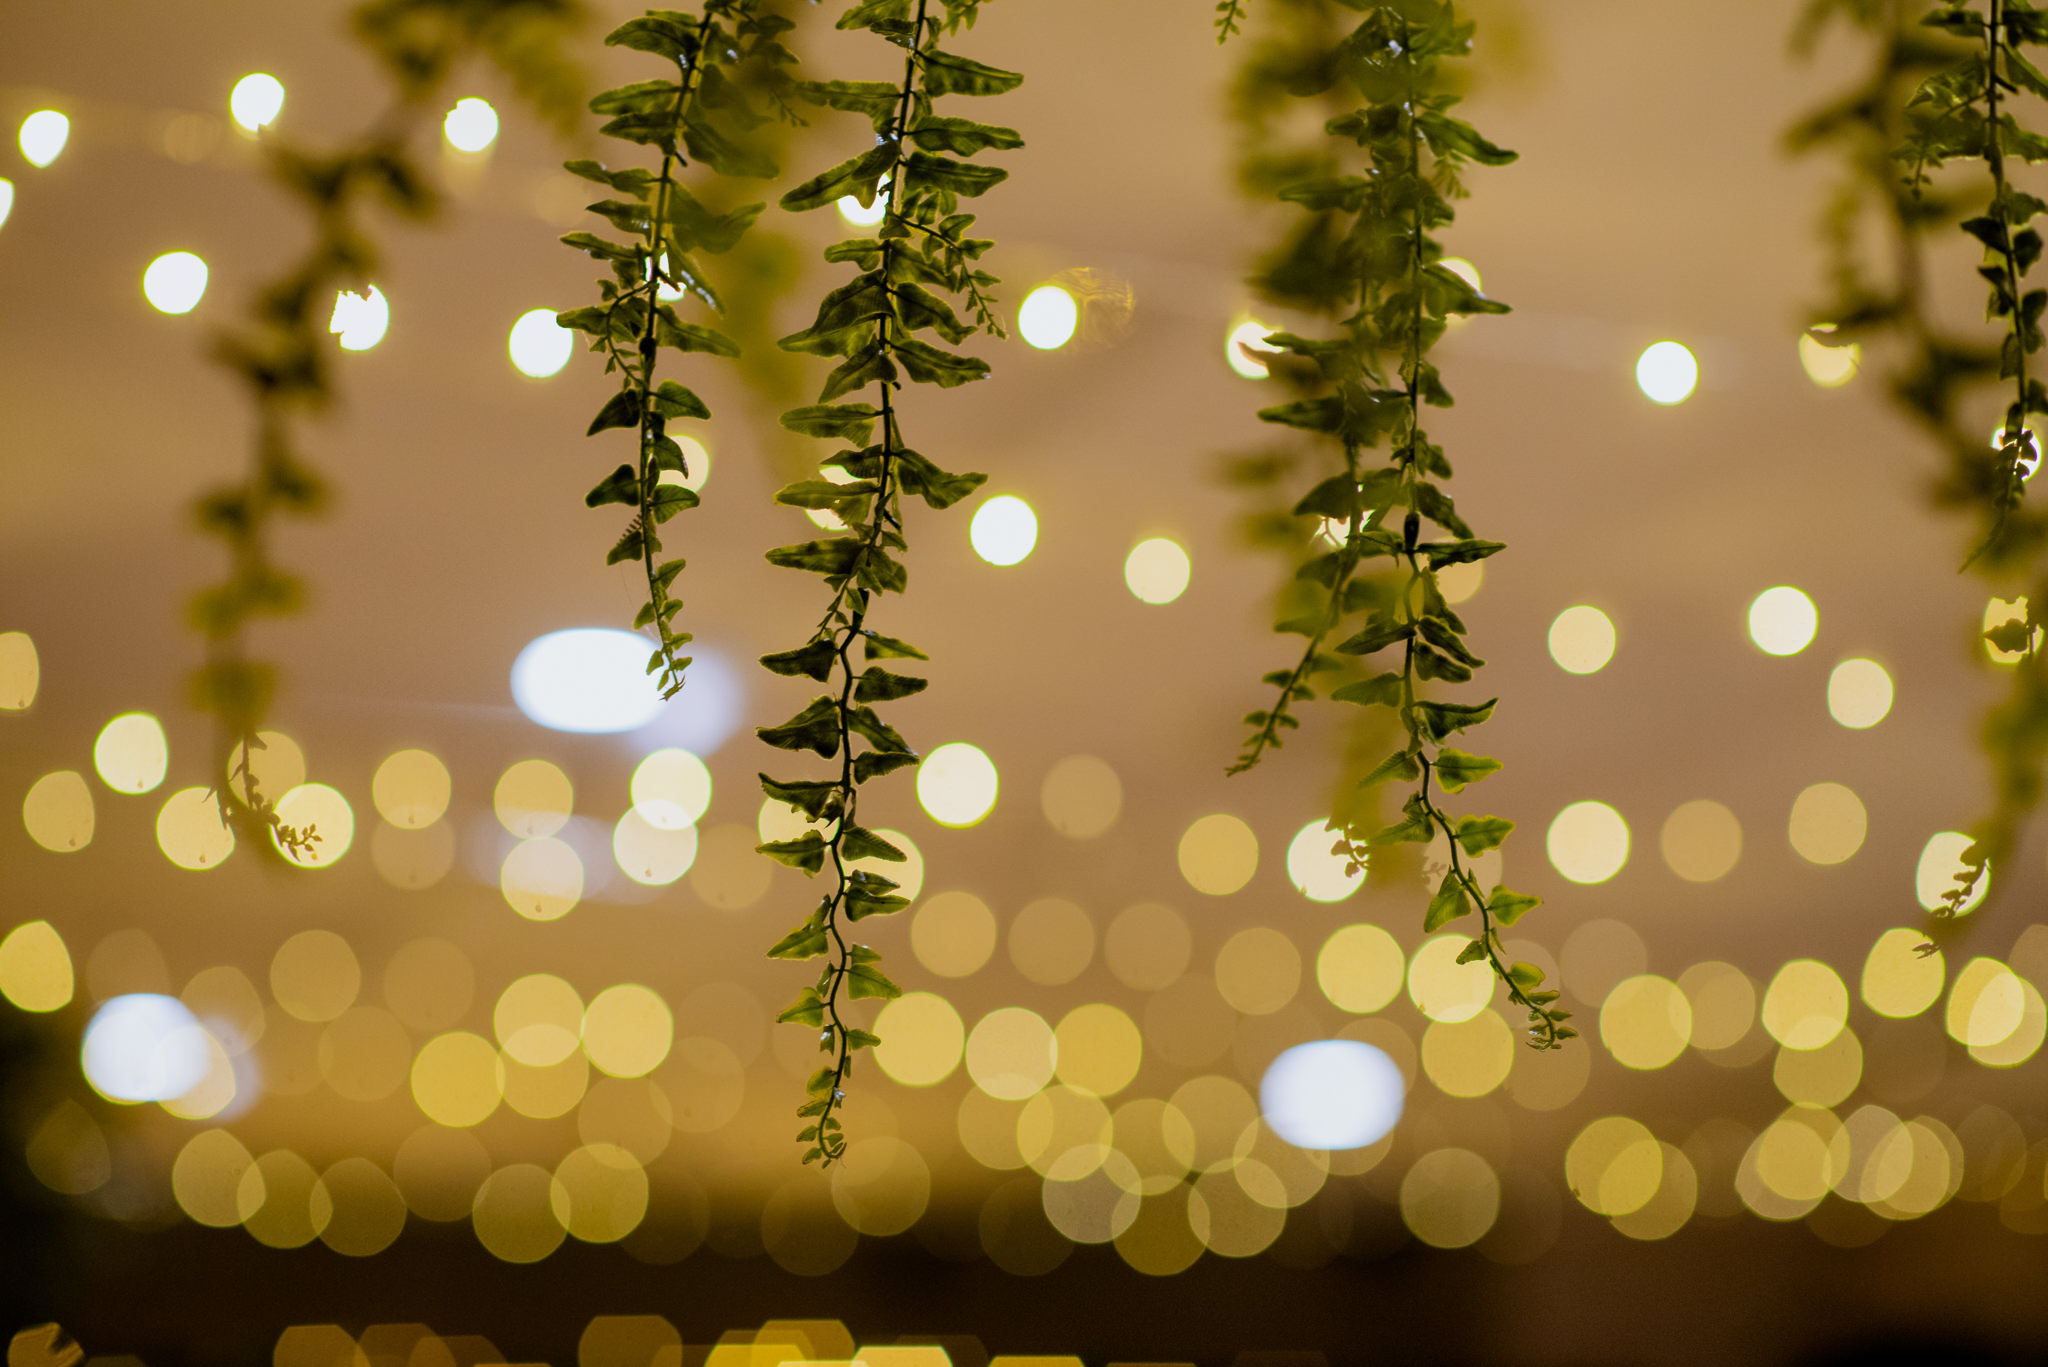 Green plants hanging from the ceiling with fairy lights out of focus in the background